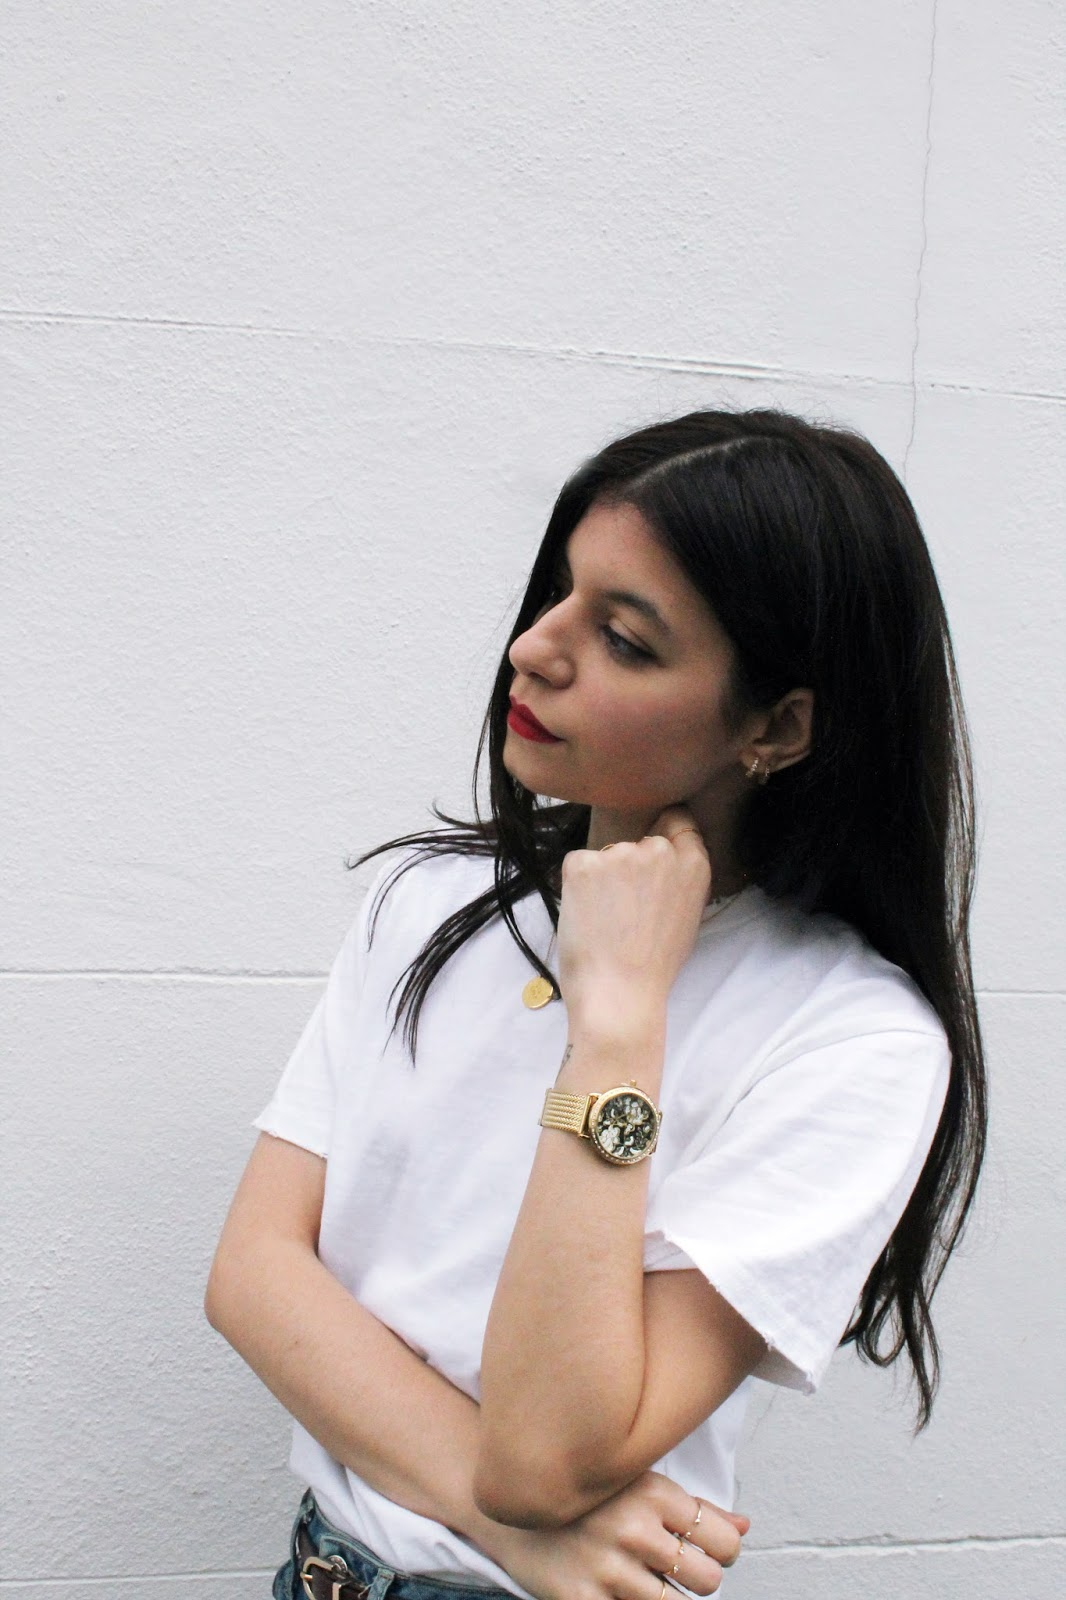 denim, white t shirt, winter outfit, red lips, fashion blogger, london blogger, microinfluencer, guess watch, giveaway,